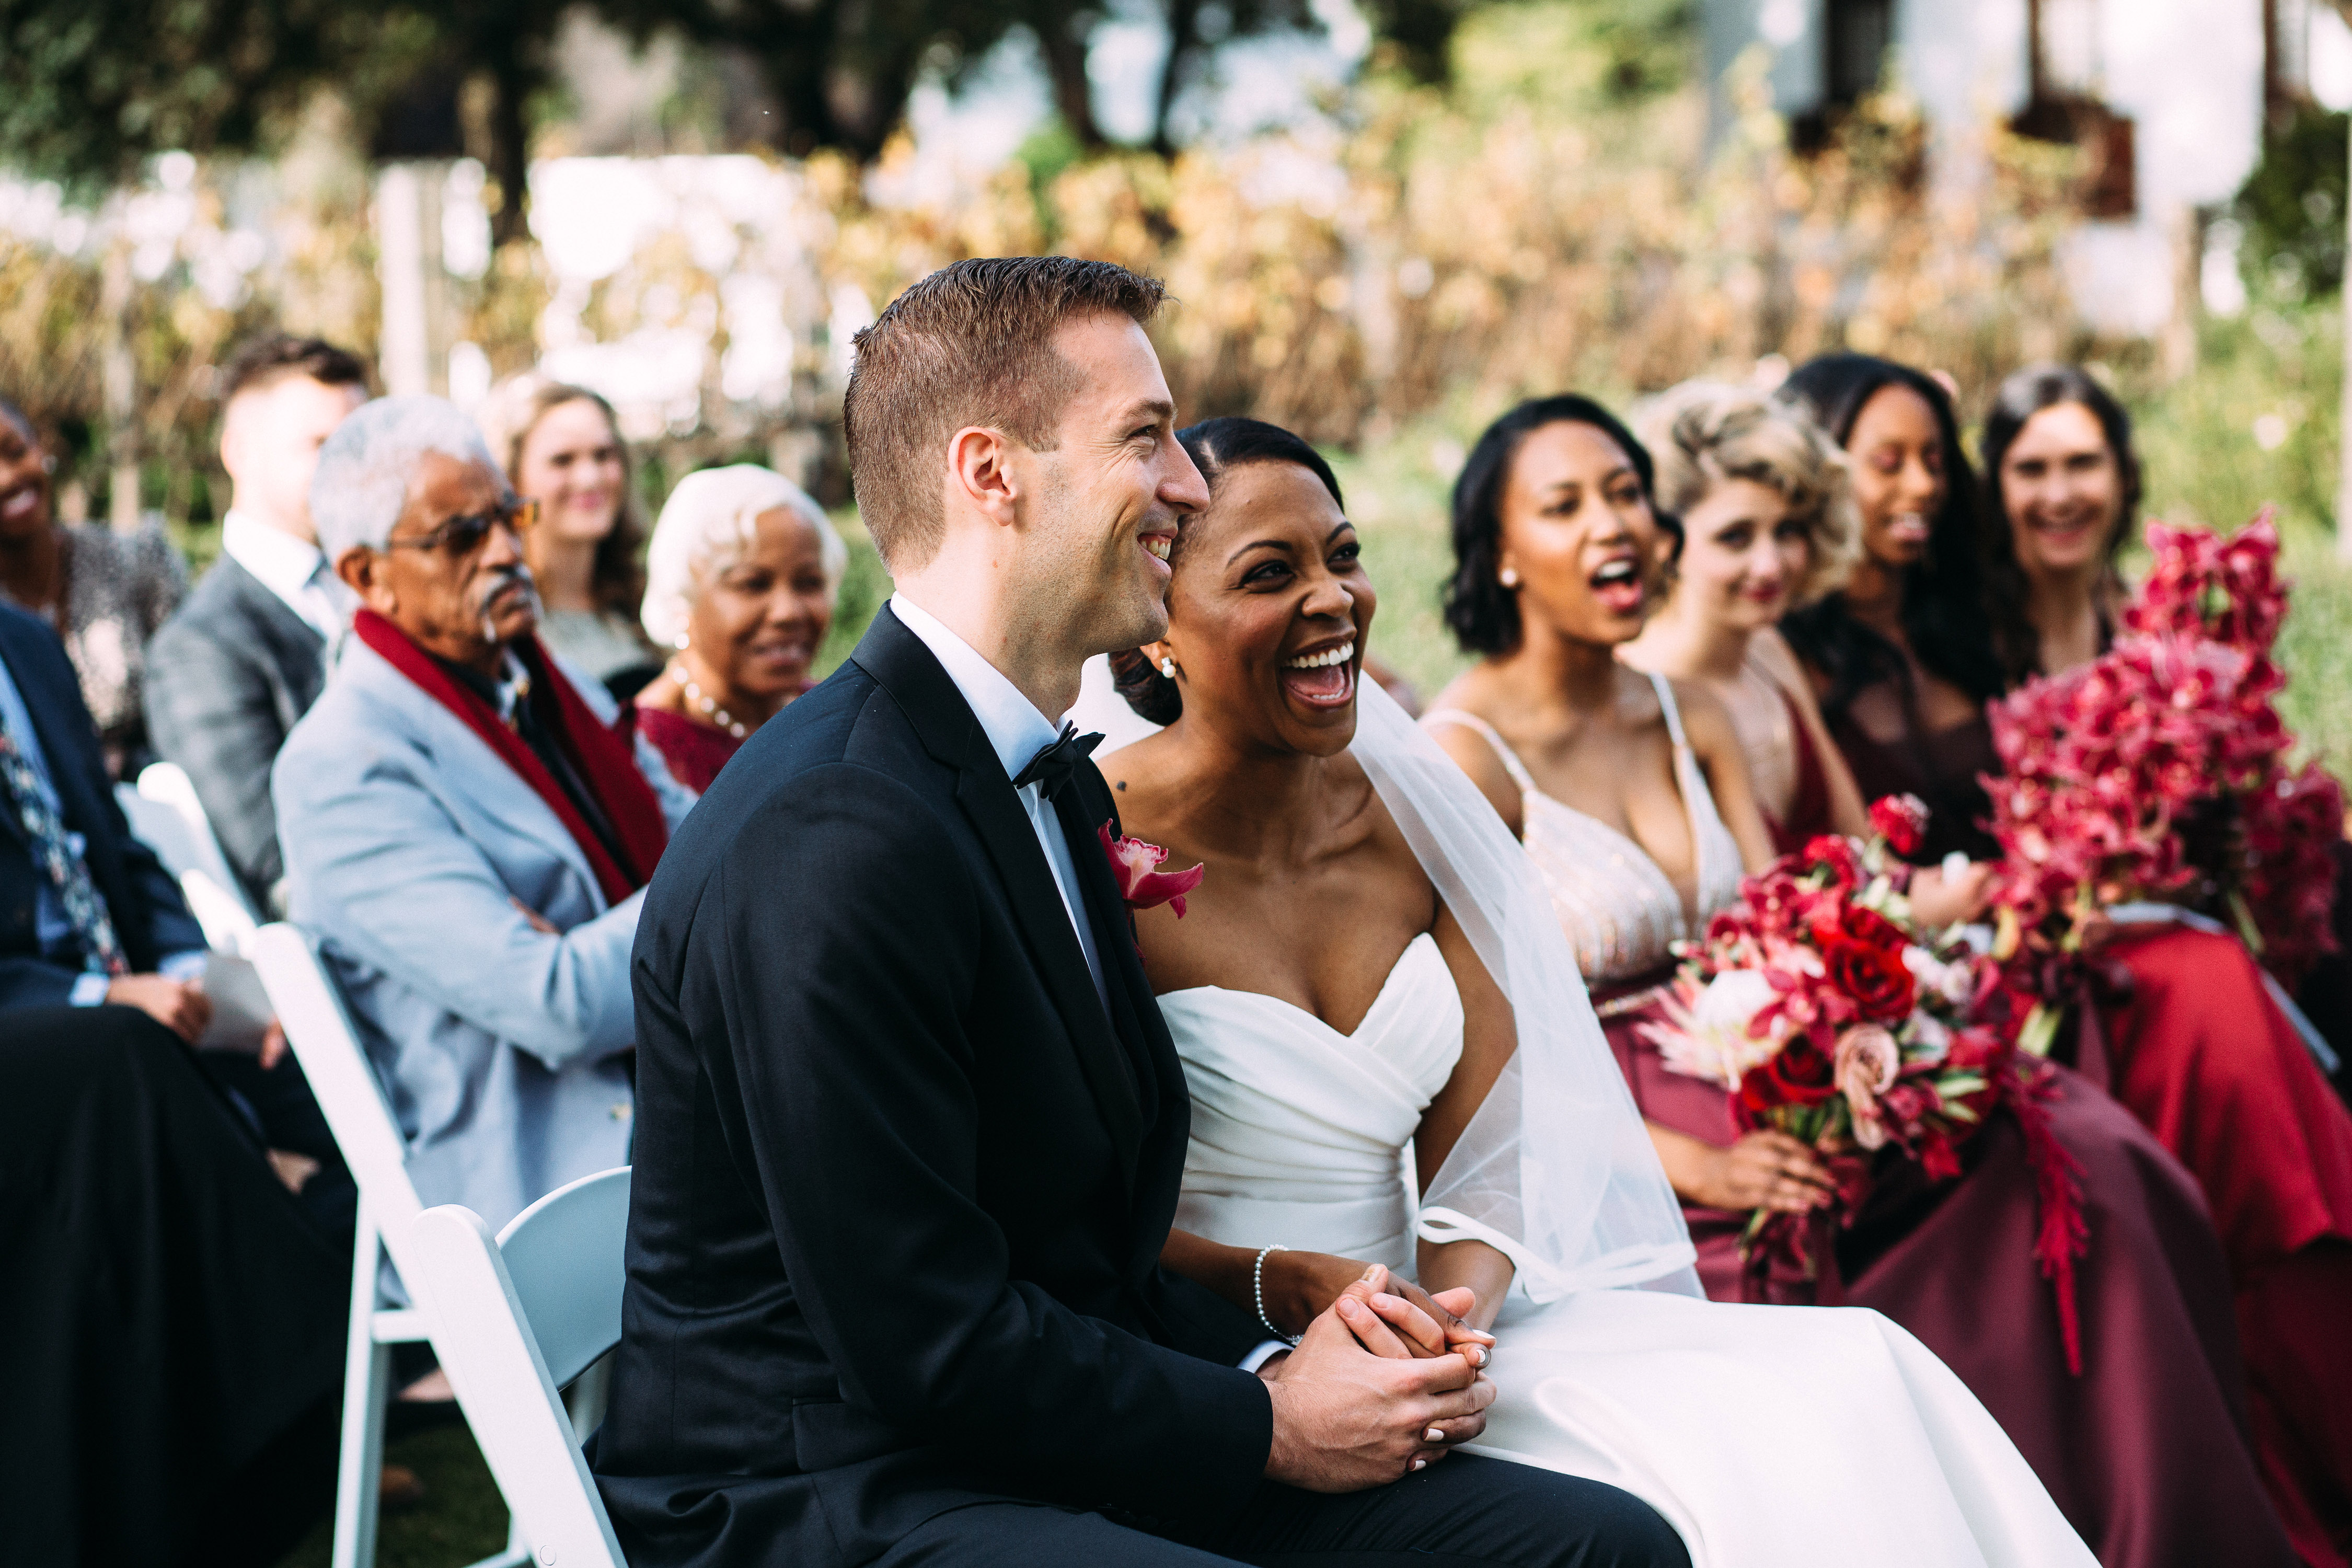 yolana douglas wedding ceremony couple seated laughing